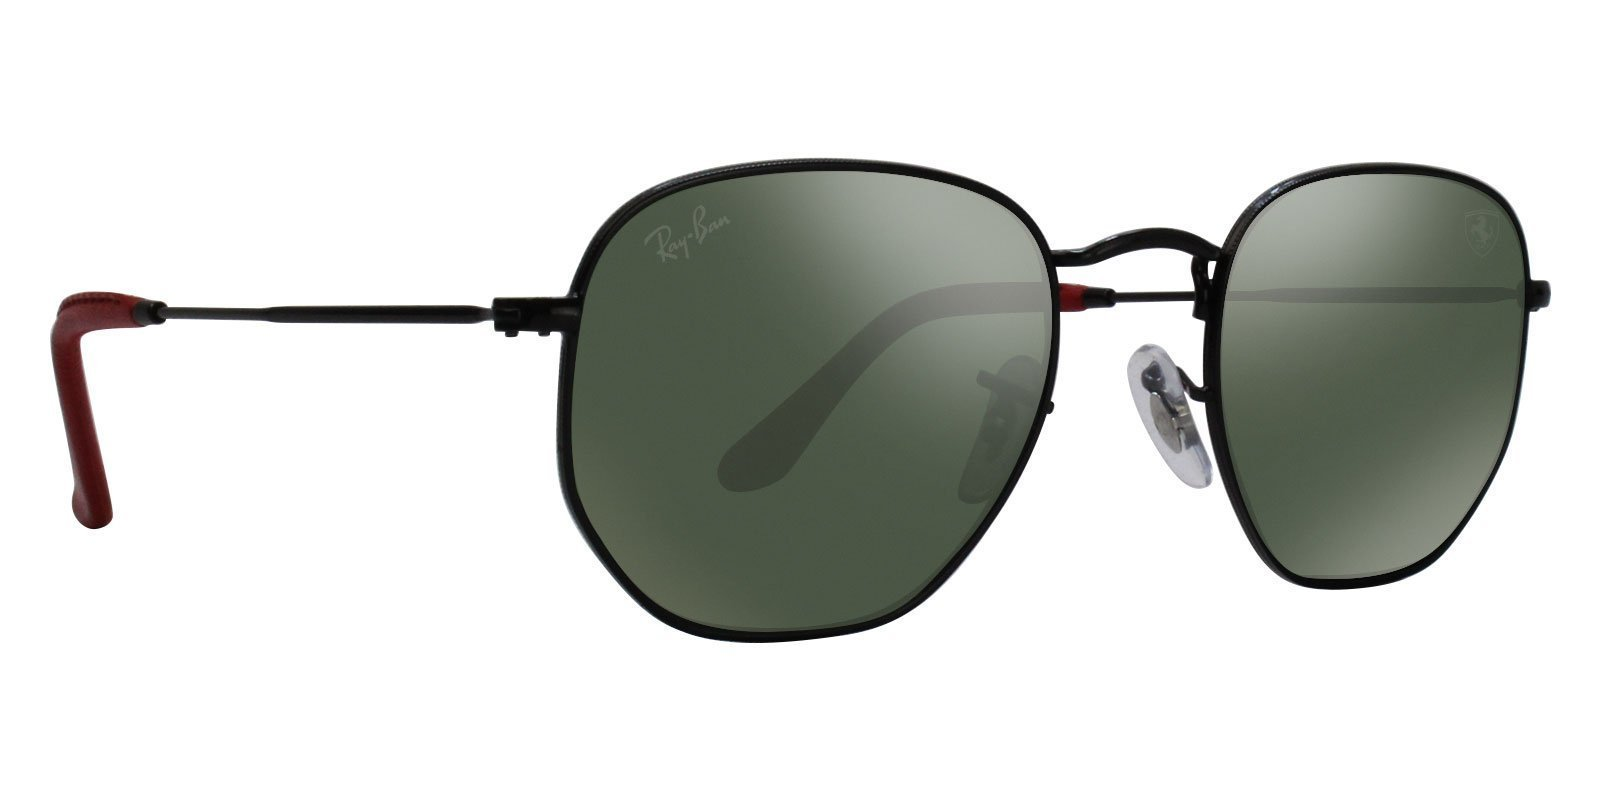 Ray Ban - RB3548NM Black Oval Unisex Sunglasses - 51mm-Sunglasses-Designer Eyes